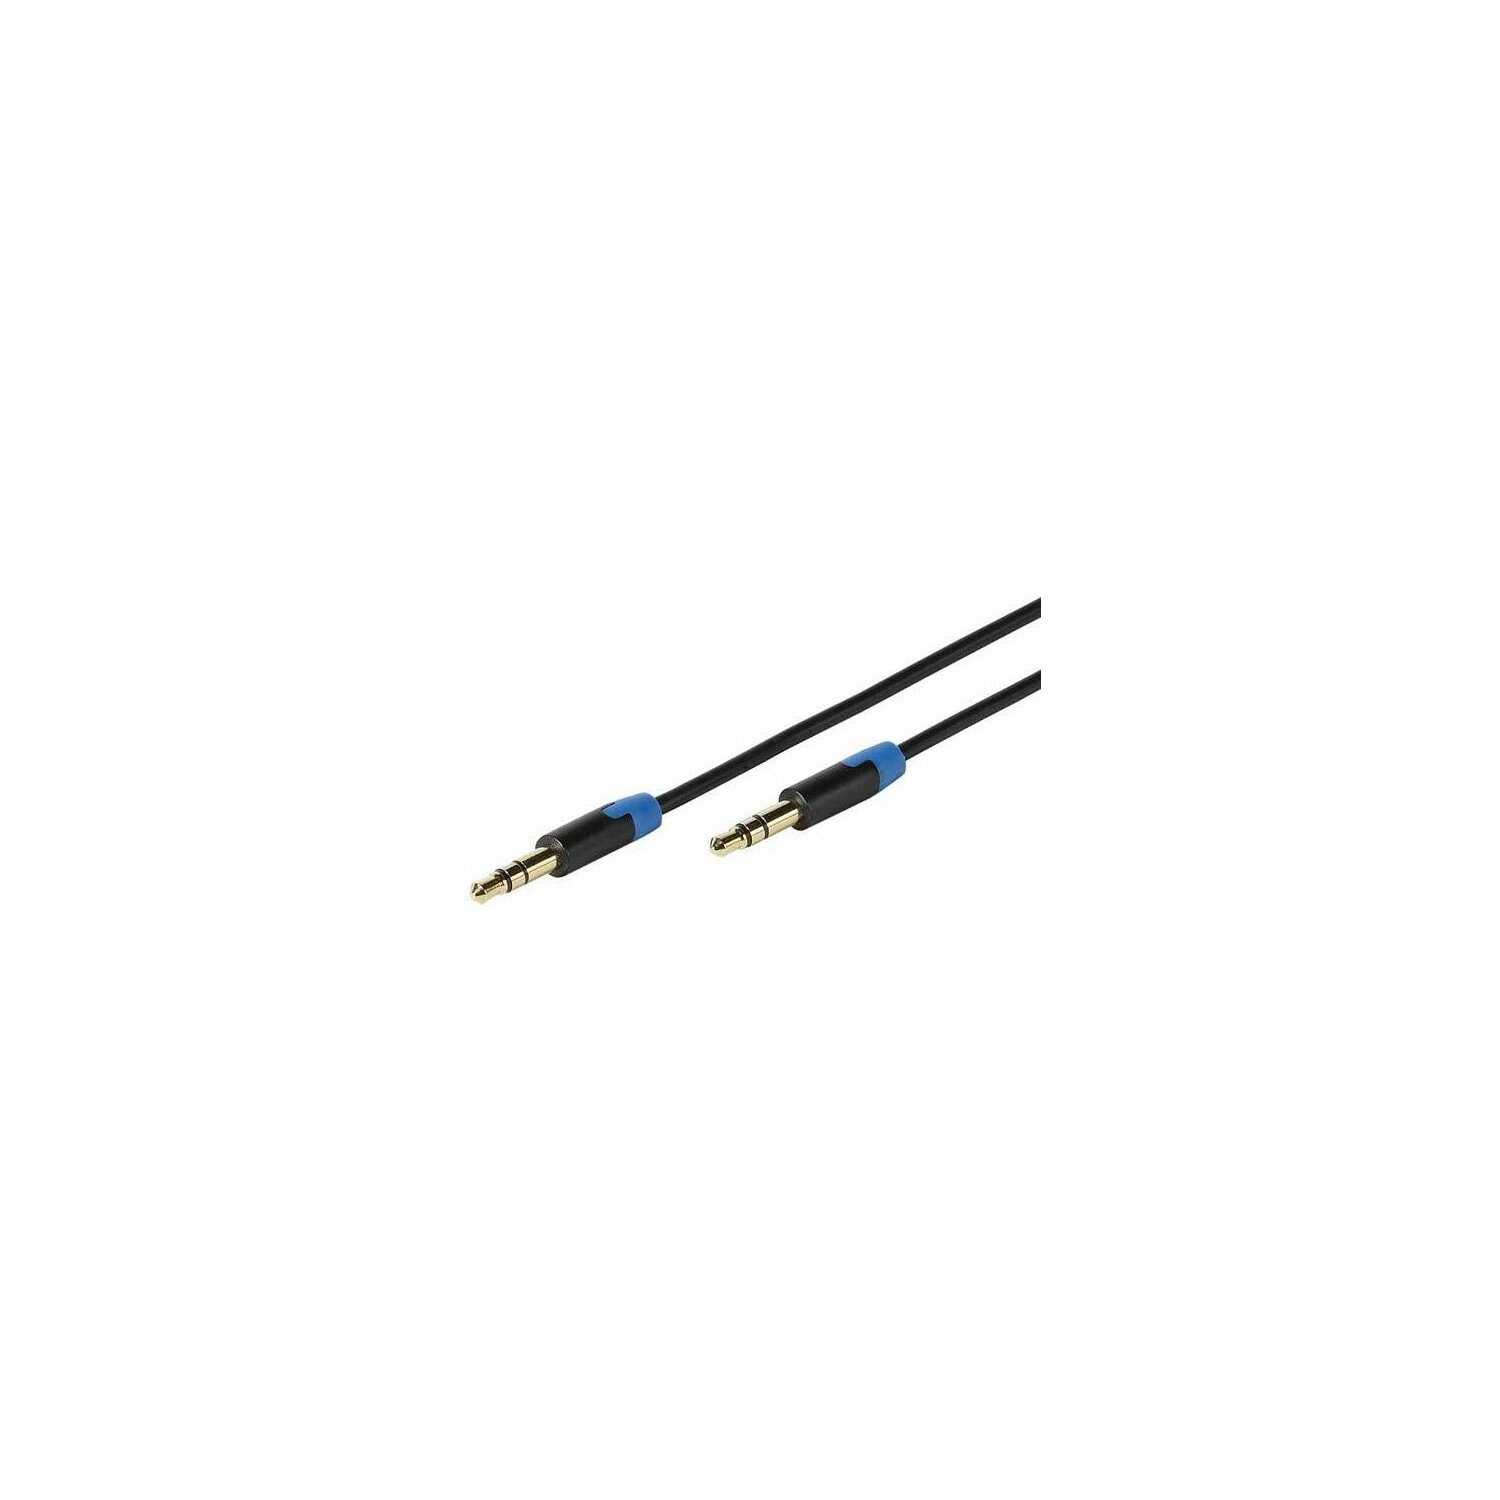 Kabel VIVANCO jack 3.5 mm - jack 3.5 mm 0.6m Czarny